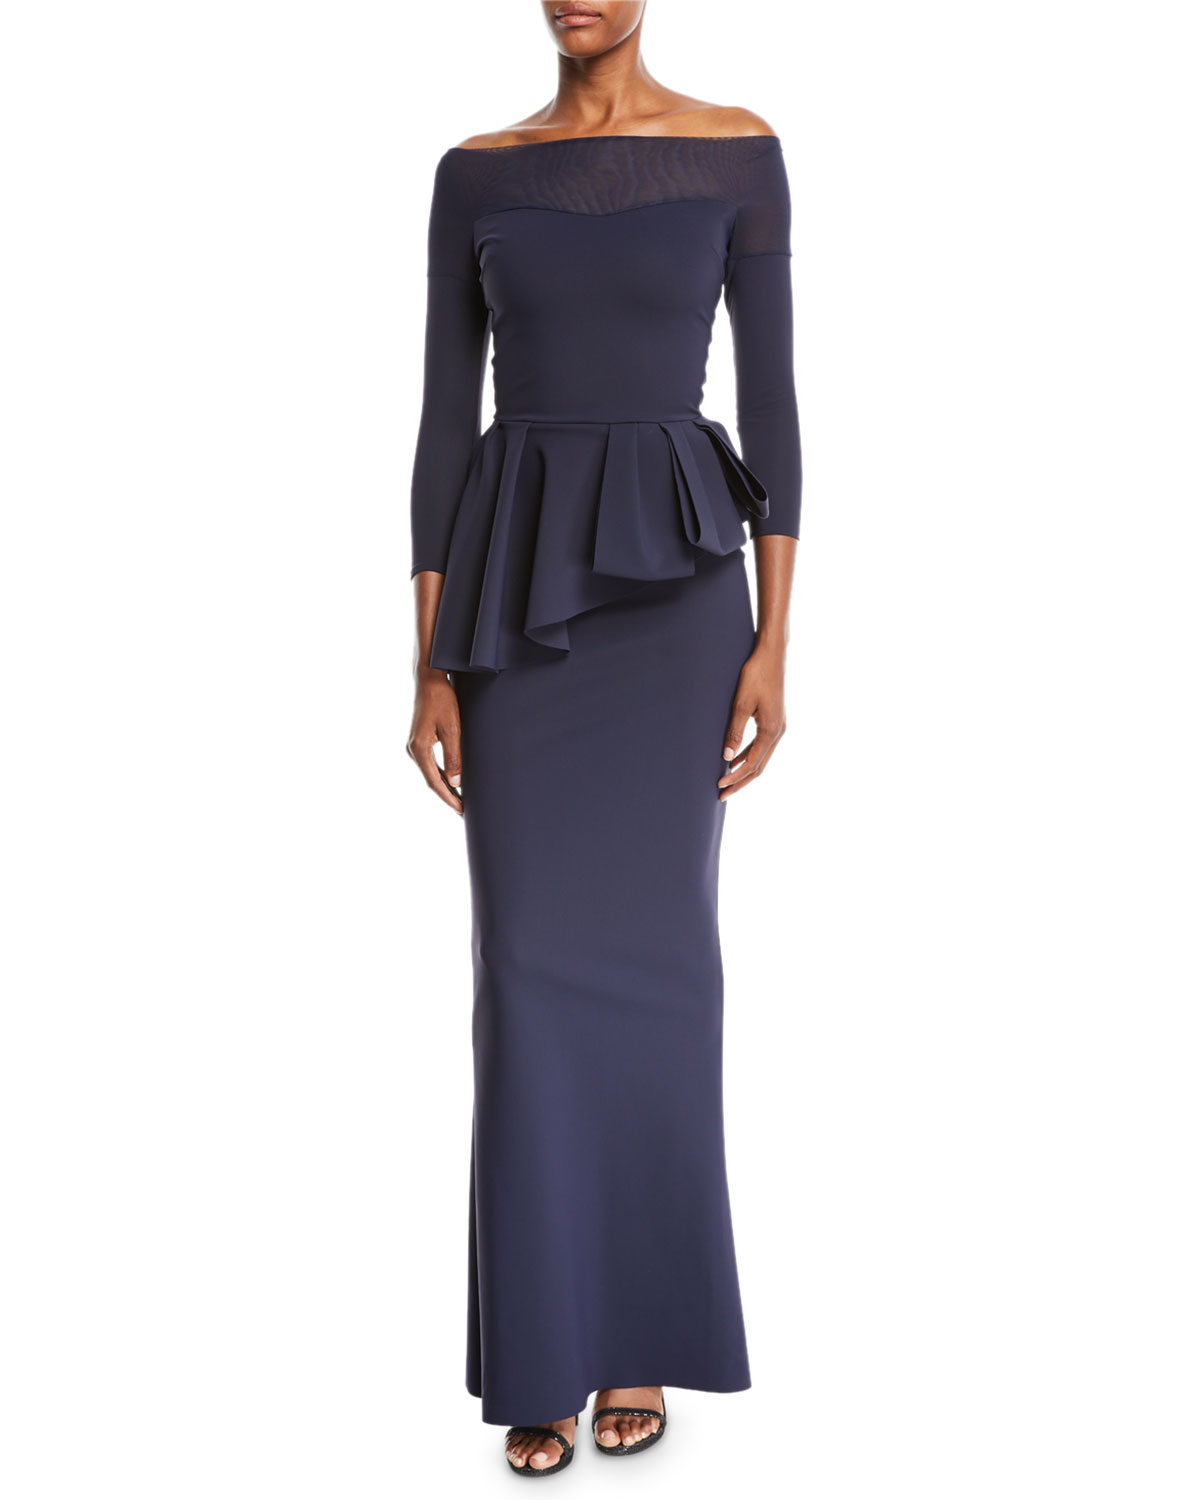 14f74fd2b45c Chiara Boni La Petite RobeNabelle Off-the-Shoulder Illusion Gown w  Peplum  Waist